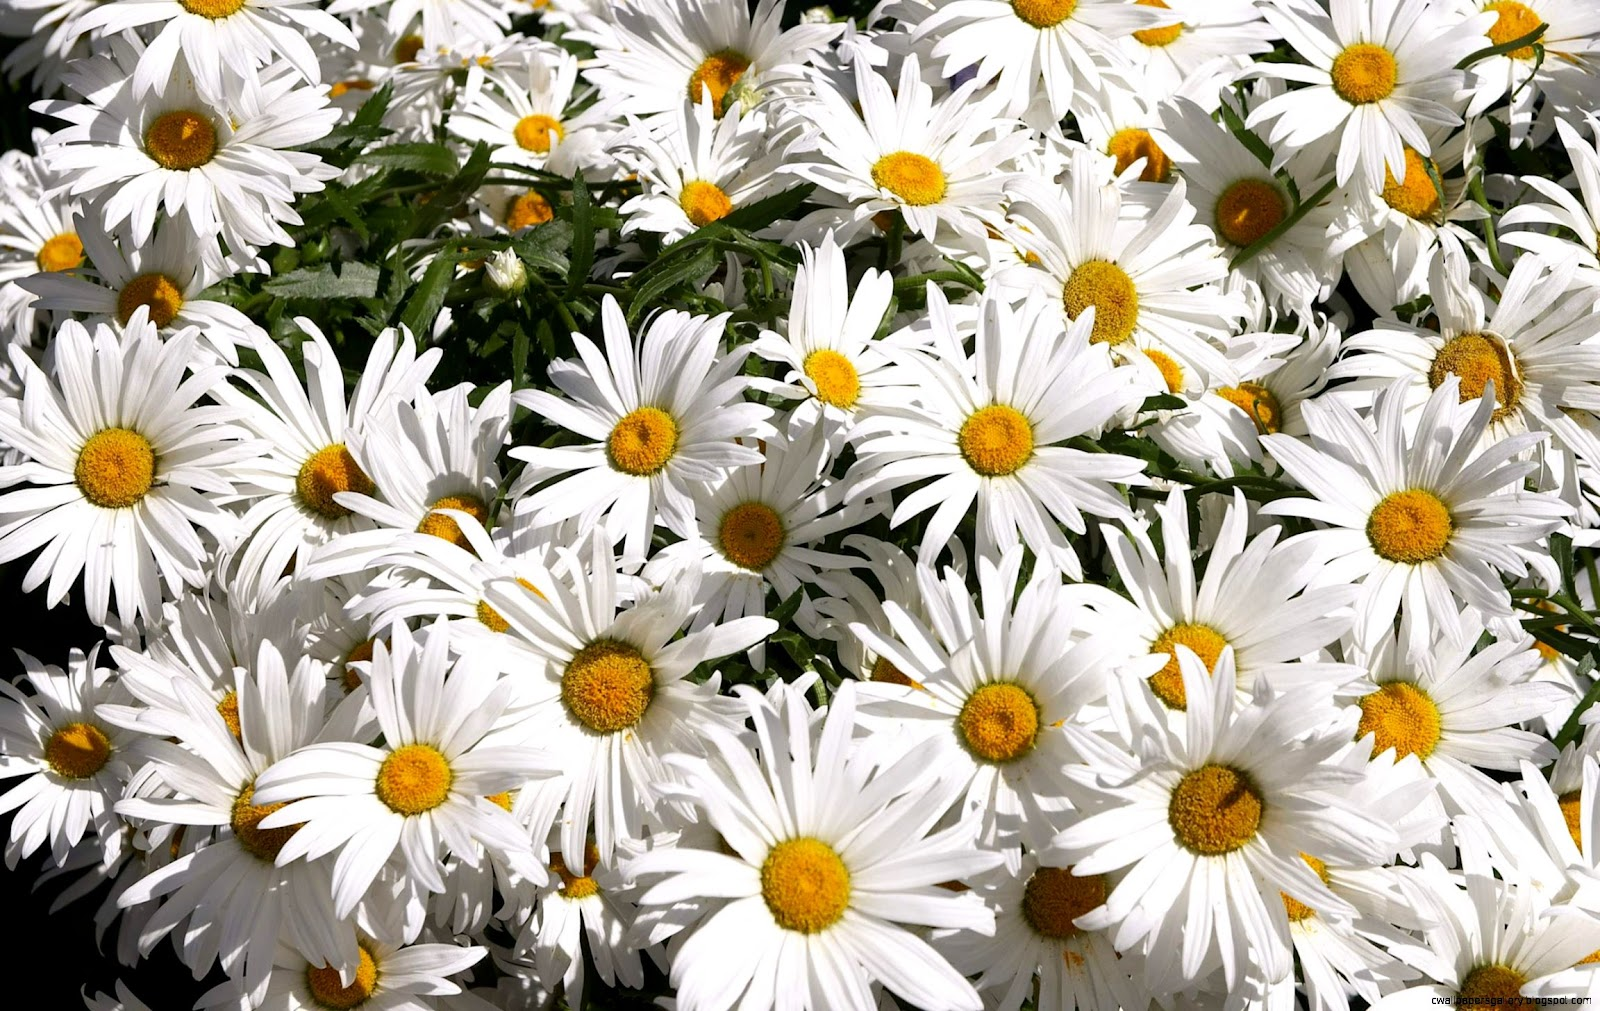 Daisy Flower Pictures Wallpapers